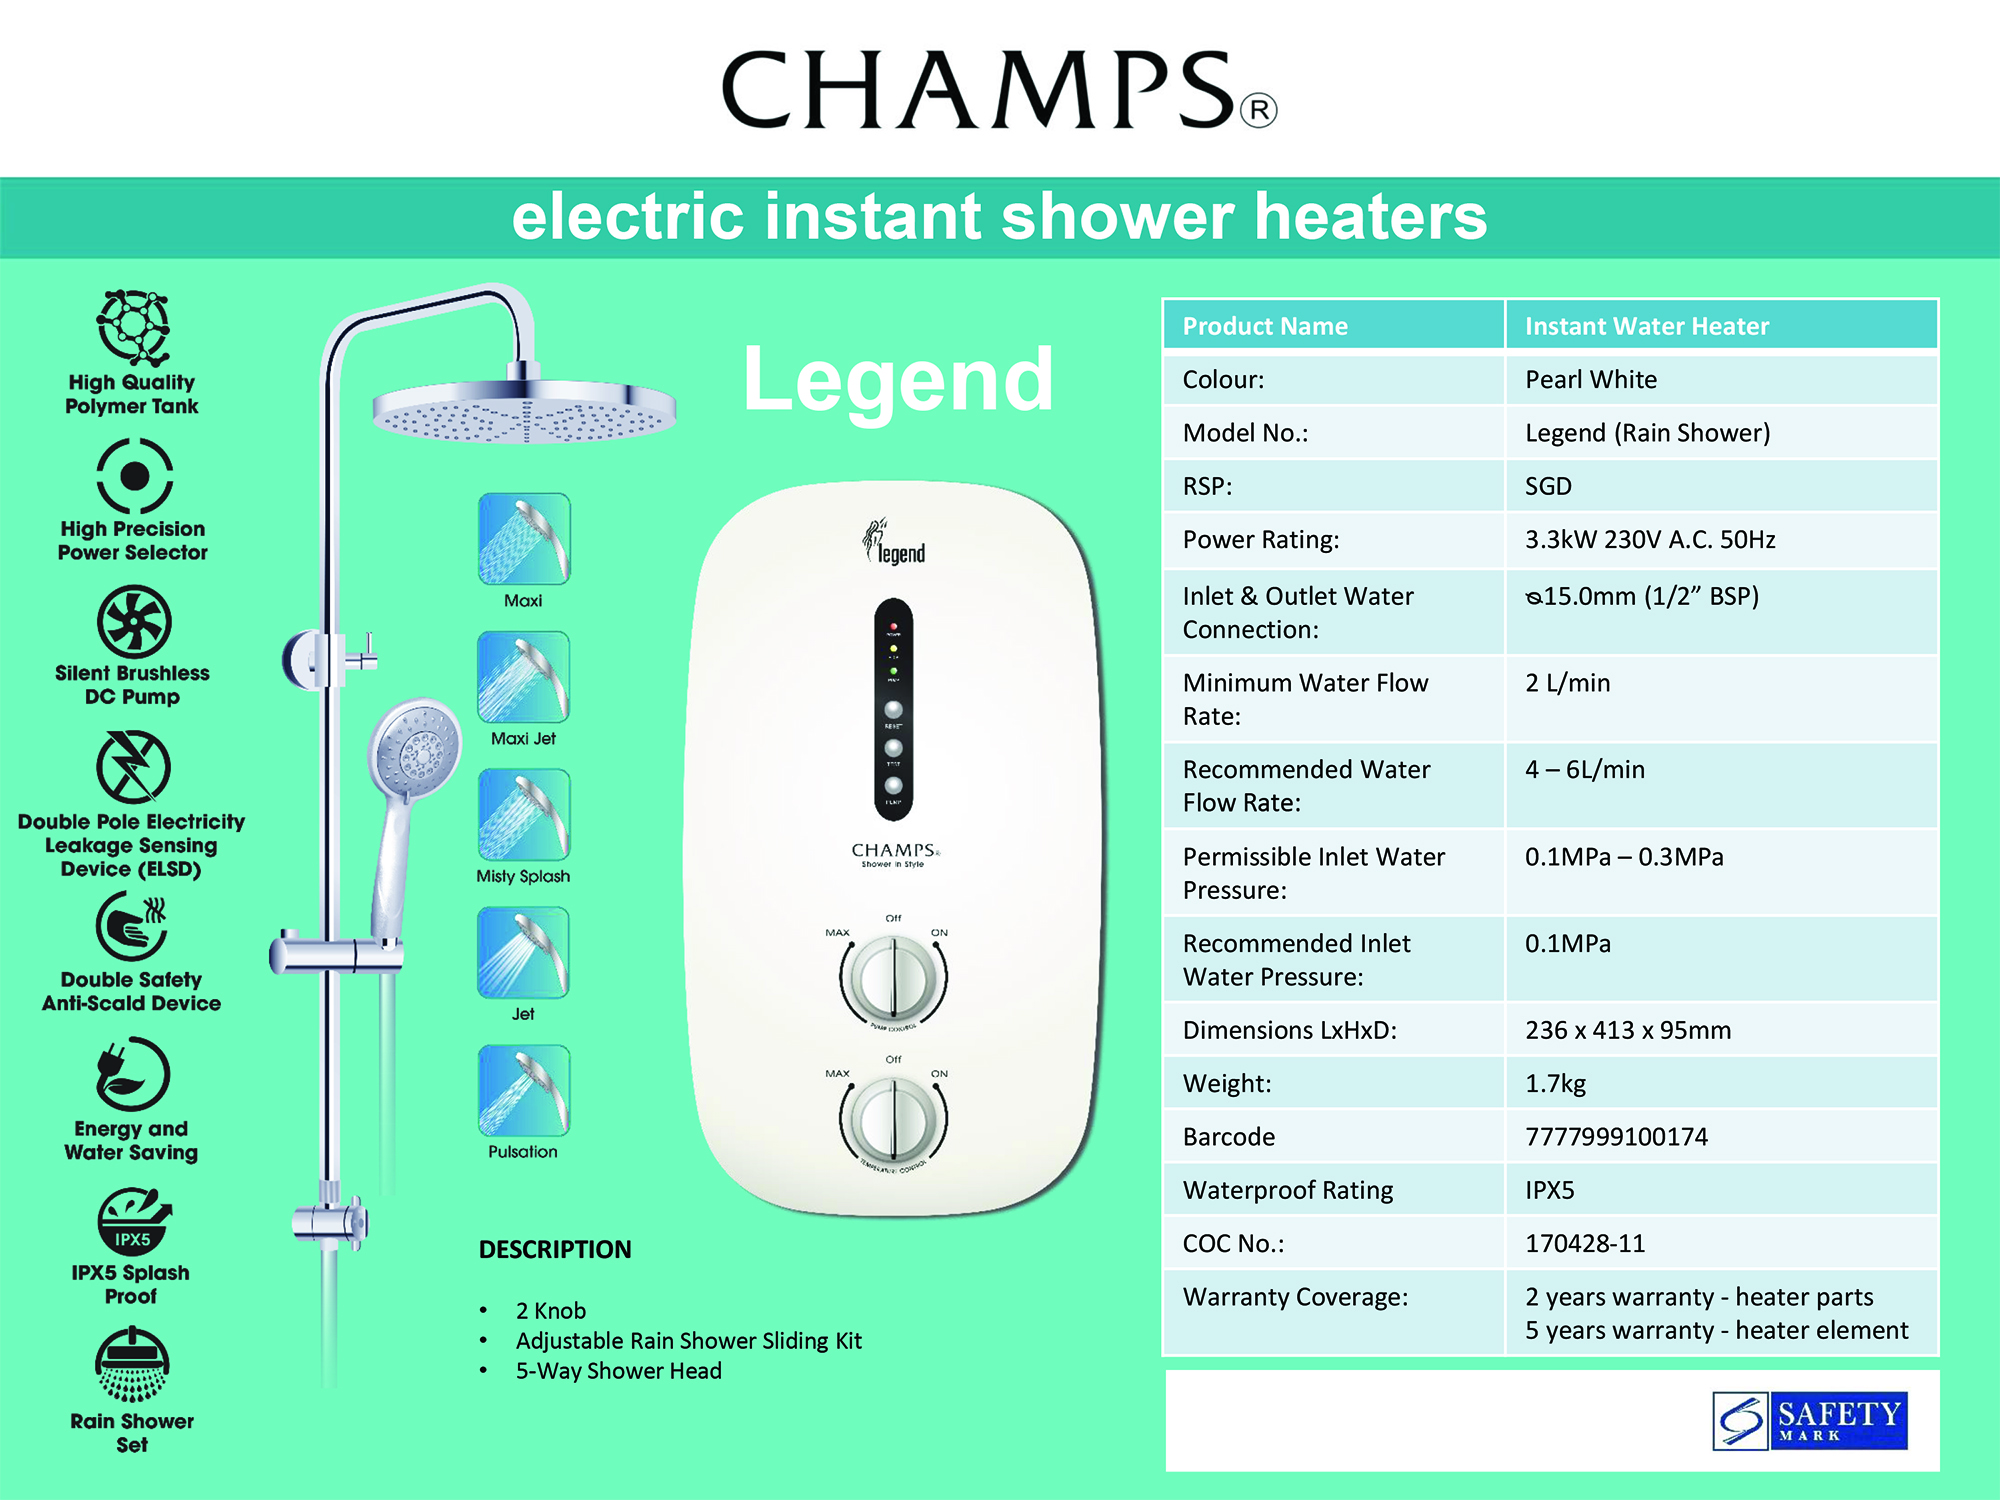 CHAMPS LEGEND WHITE